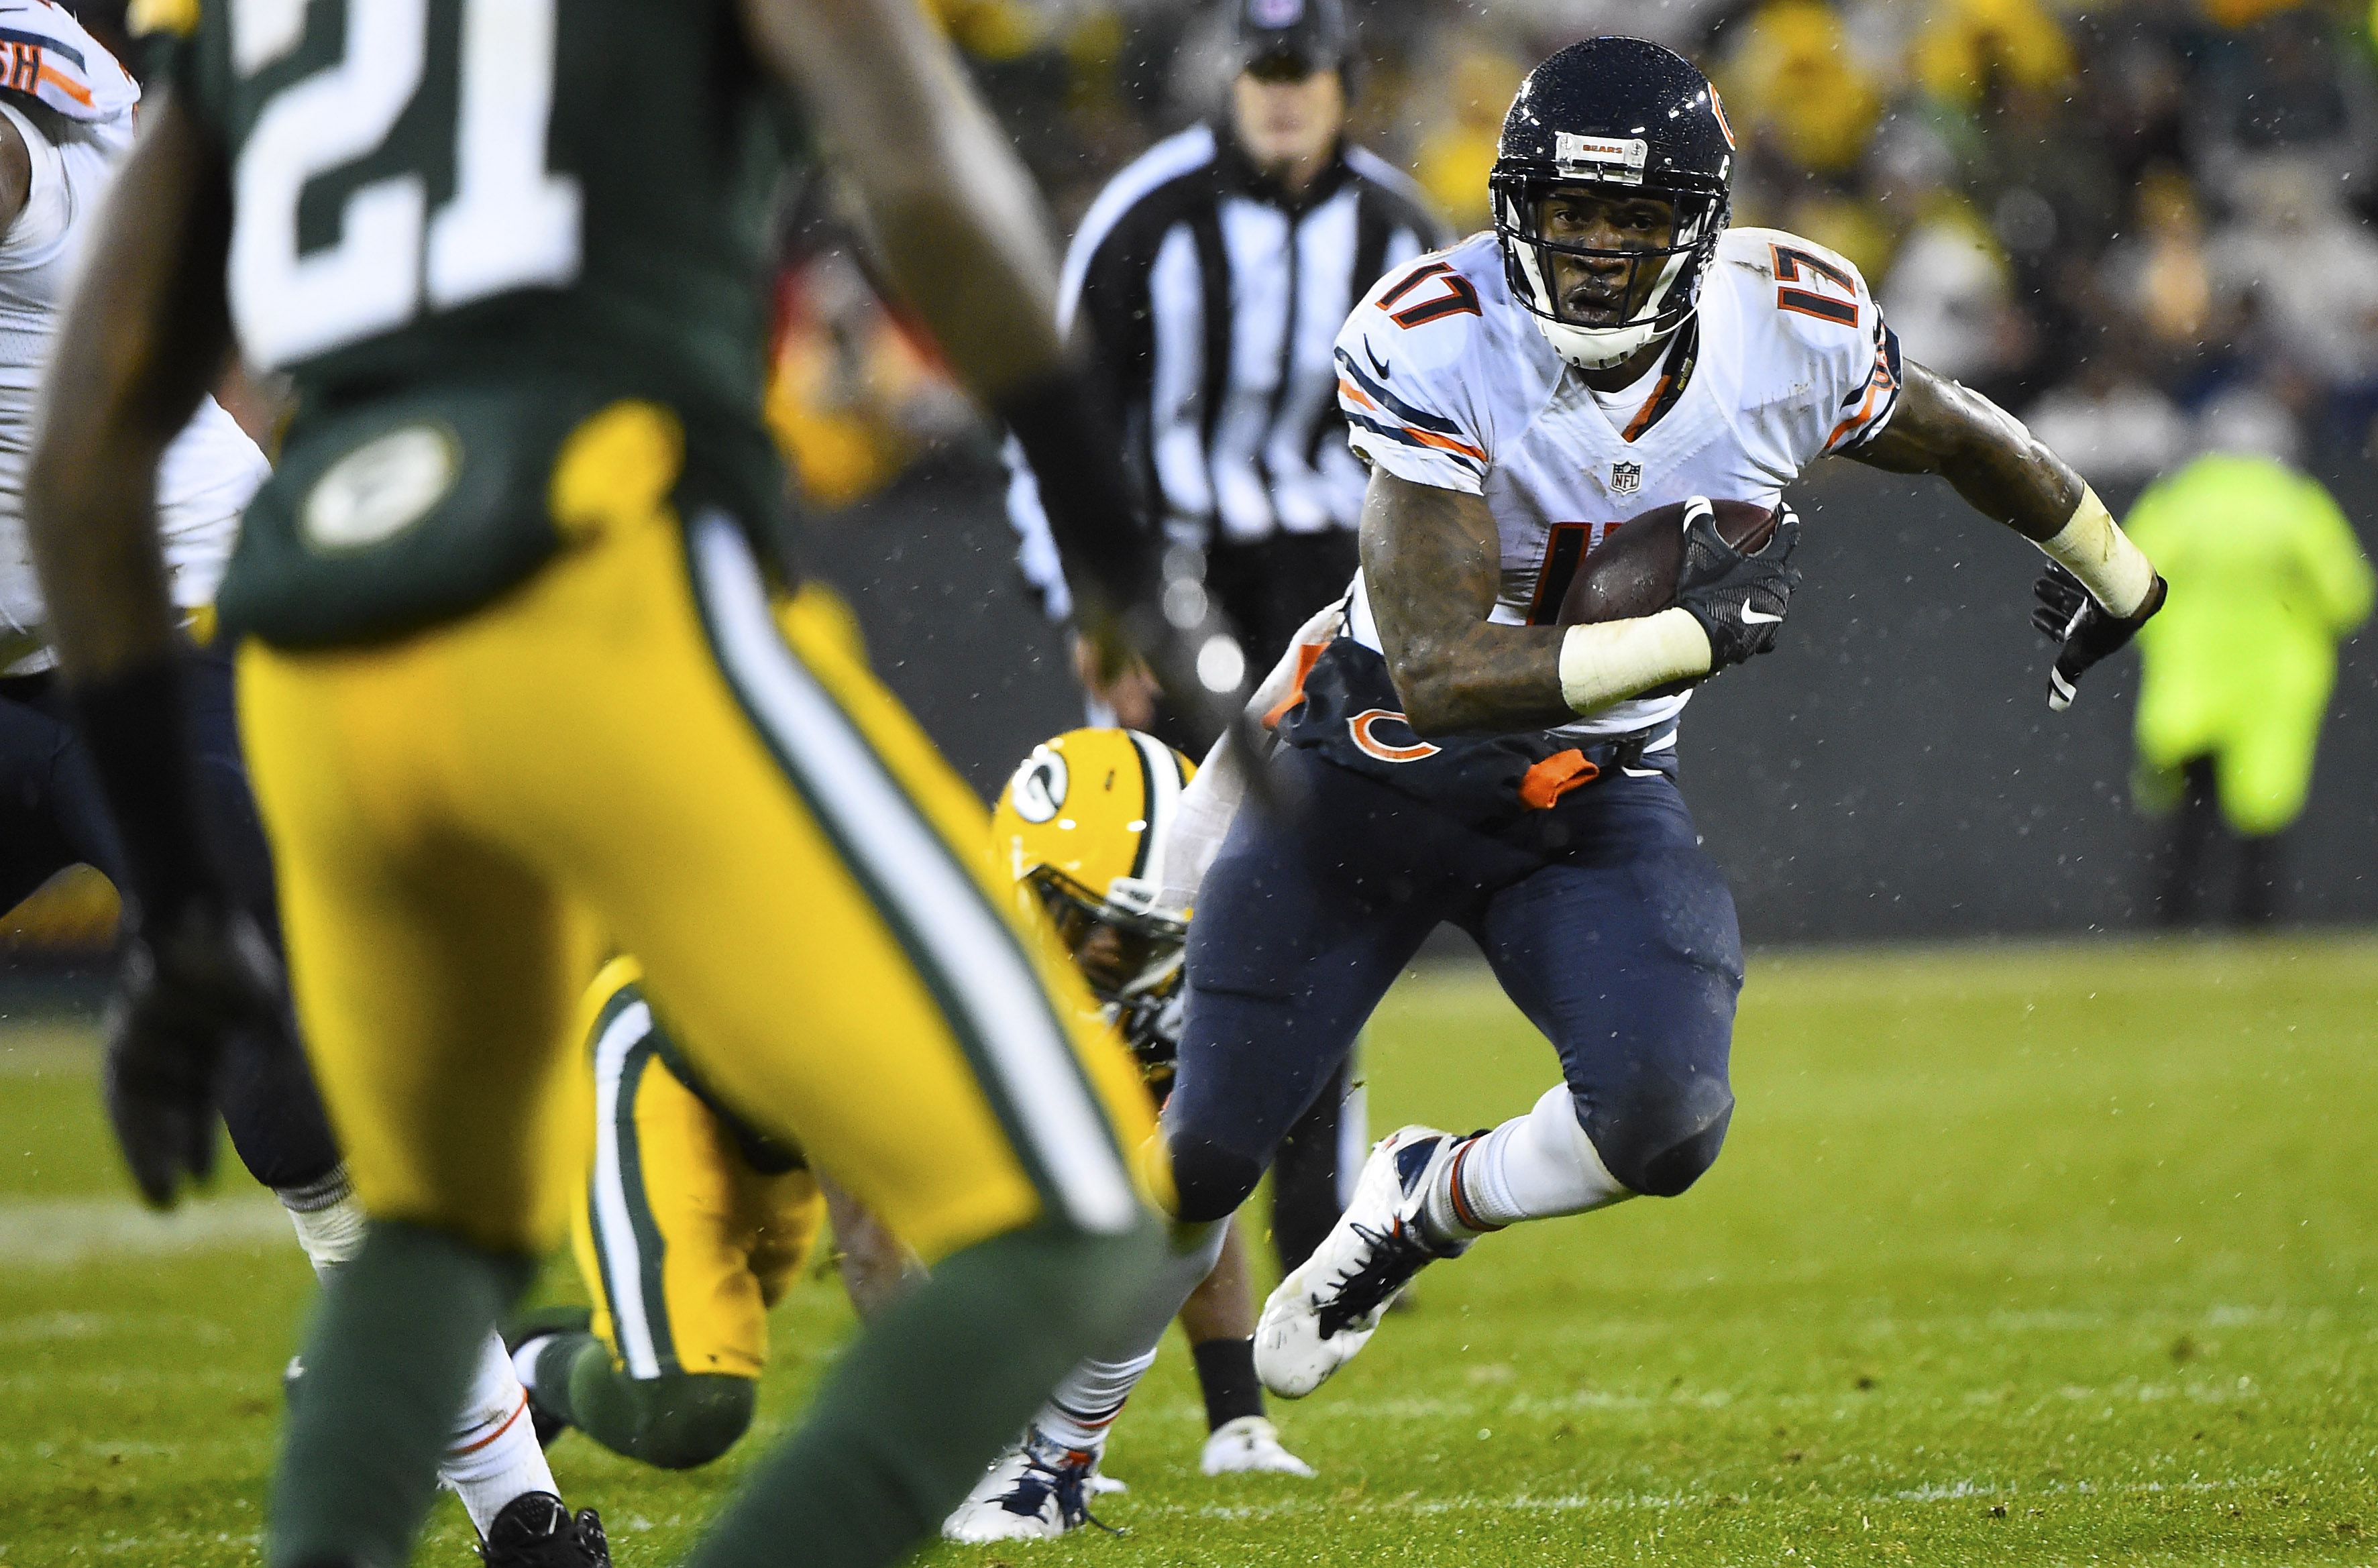 8953974-nfl-chicago-bears-at-green-bay-packers